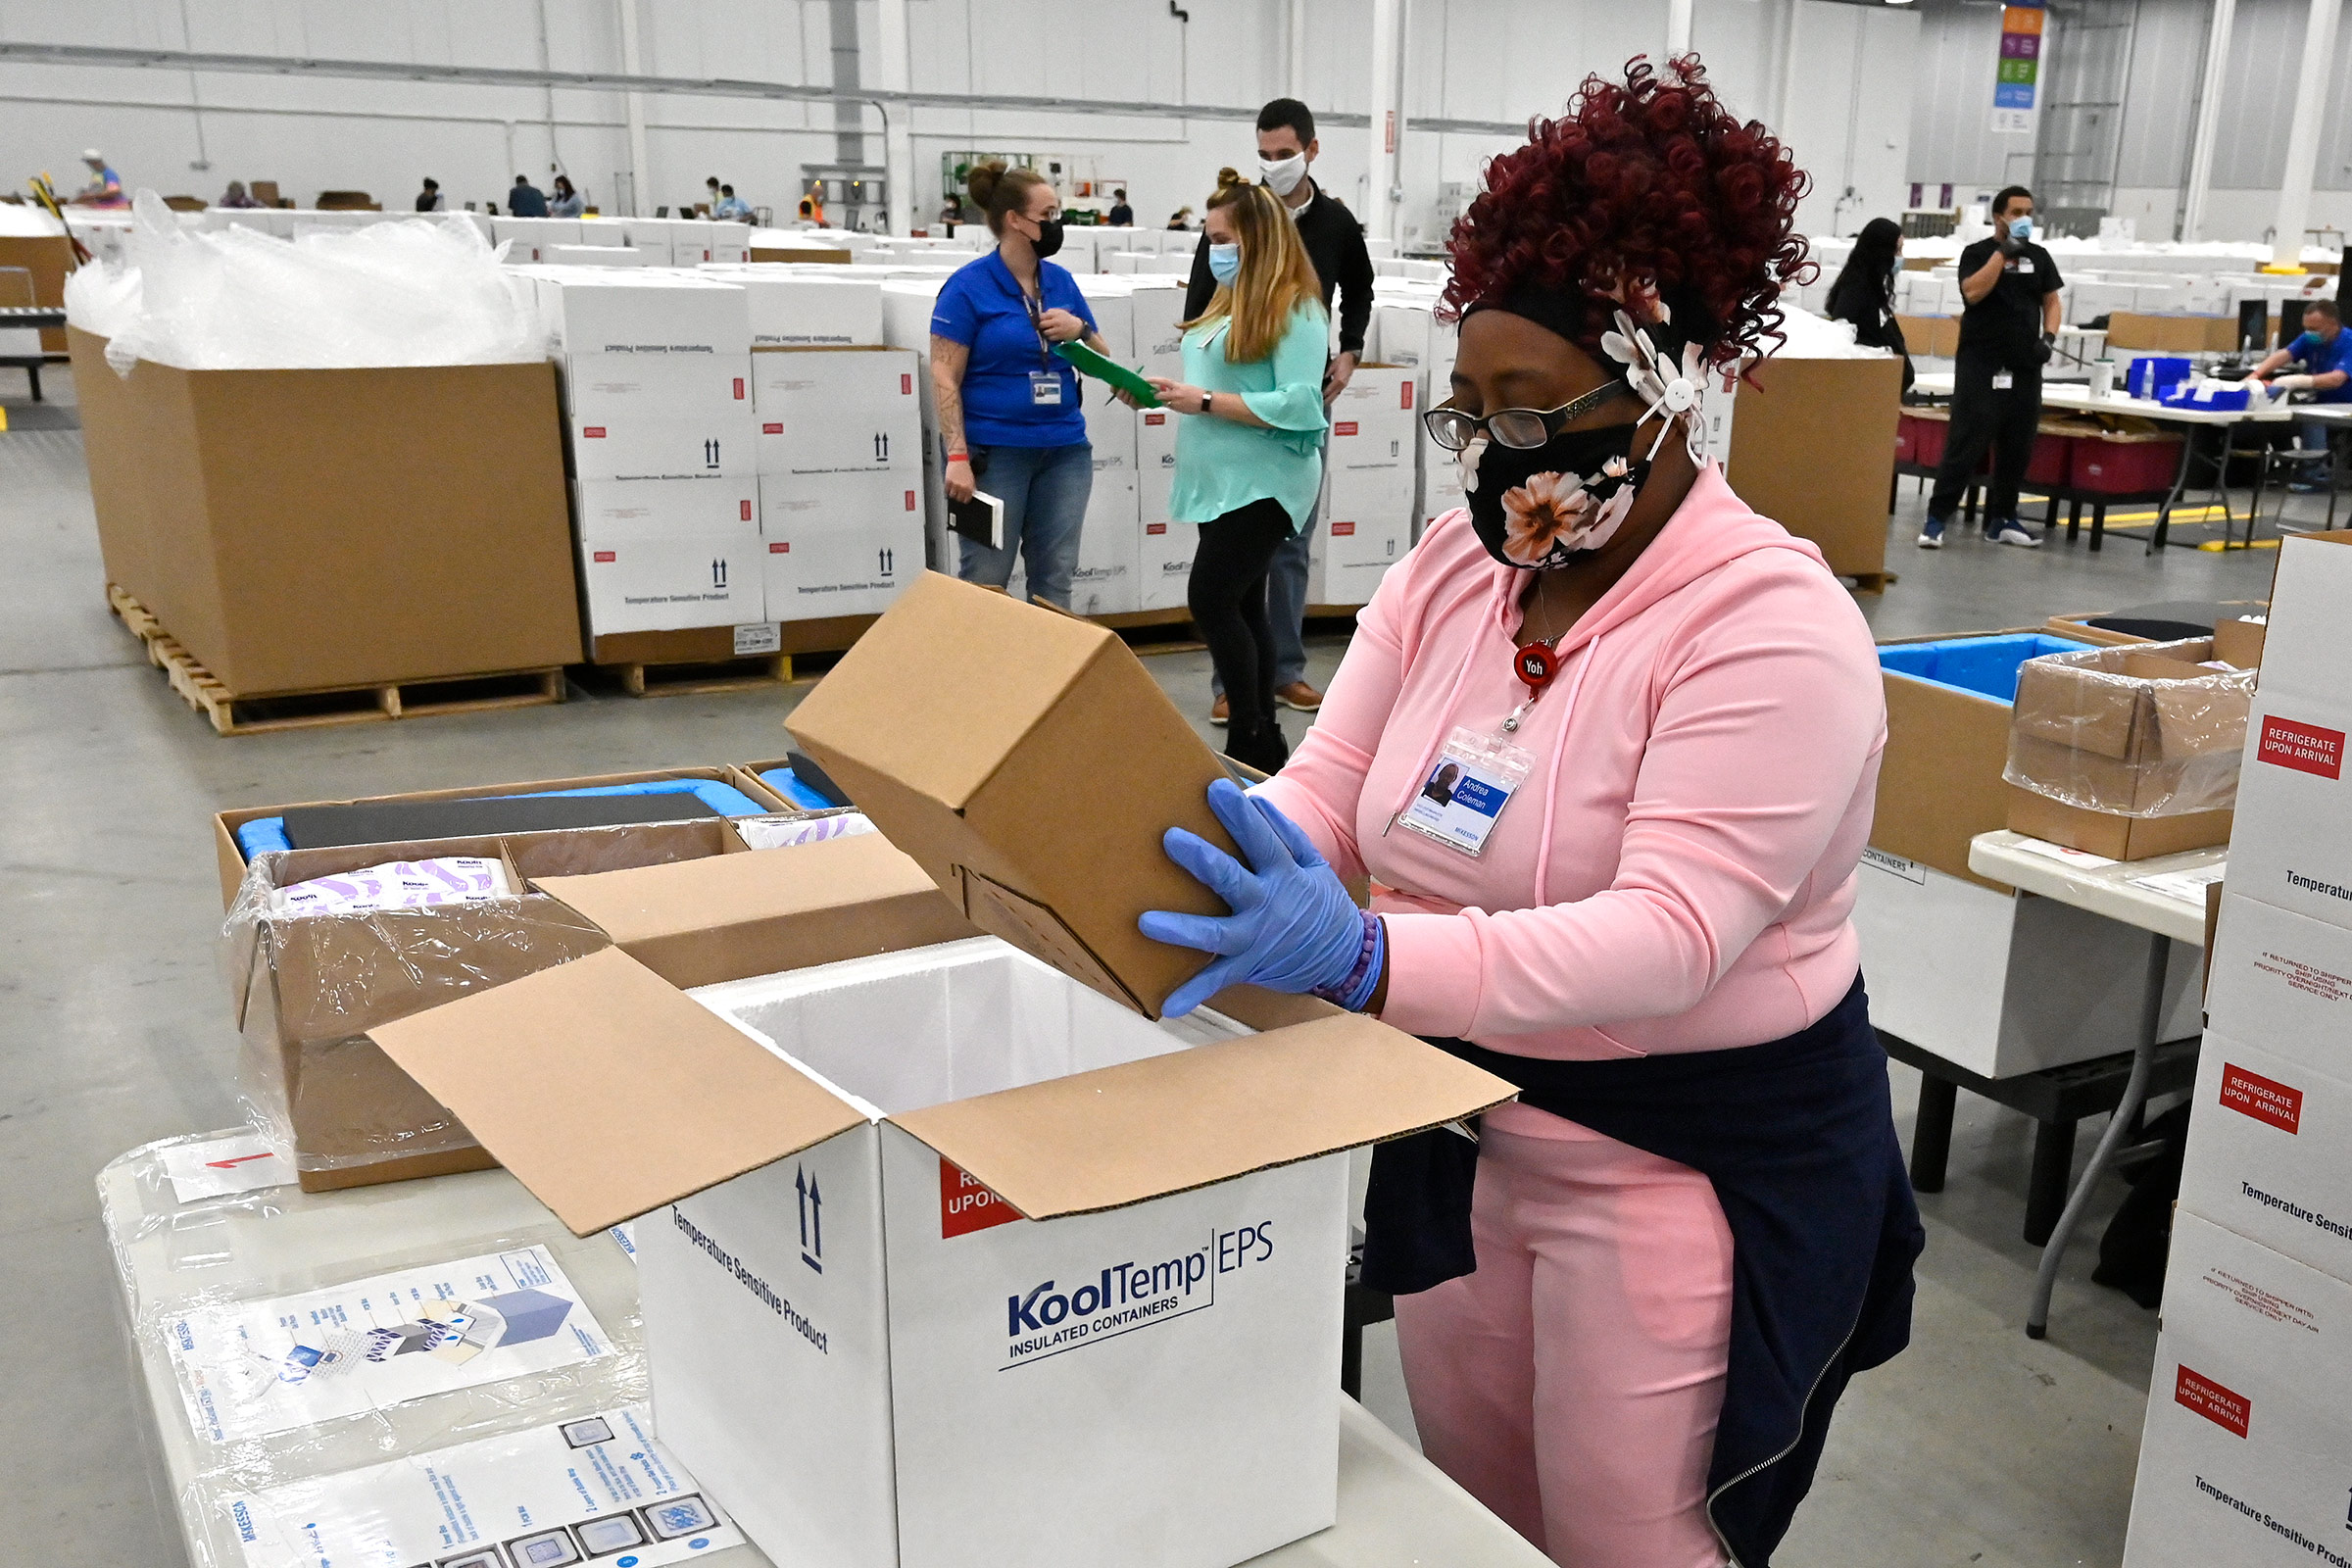 An employee with the McKesson Corporation packs a box of Johnson & Johnson Covid-19 vaccines for shipping in Shepherdsville, Kentucky, on March 1.